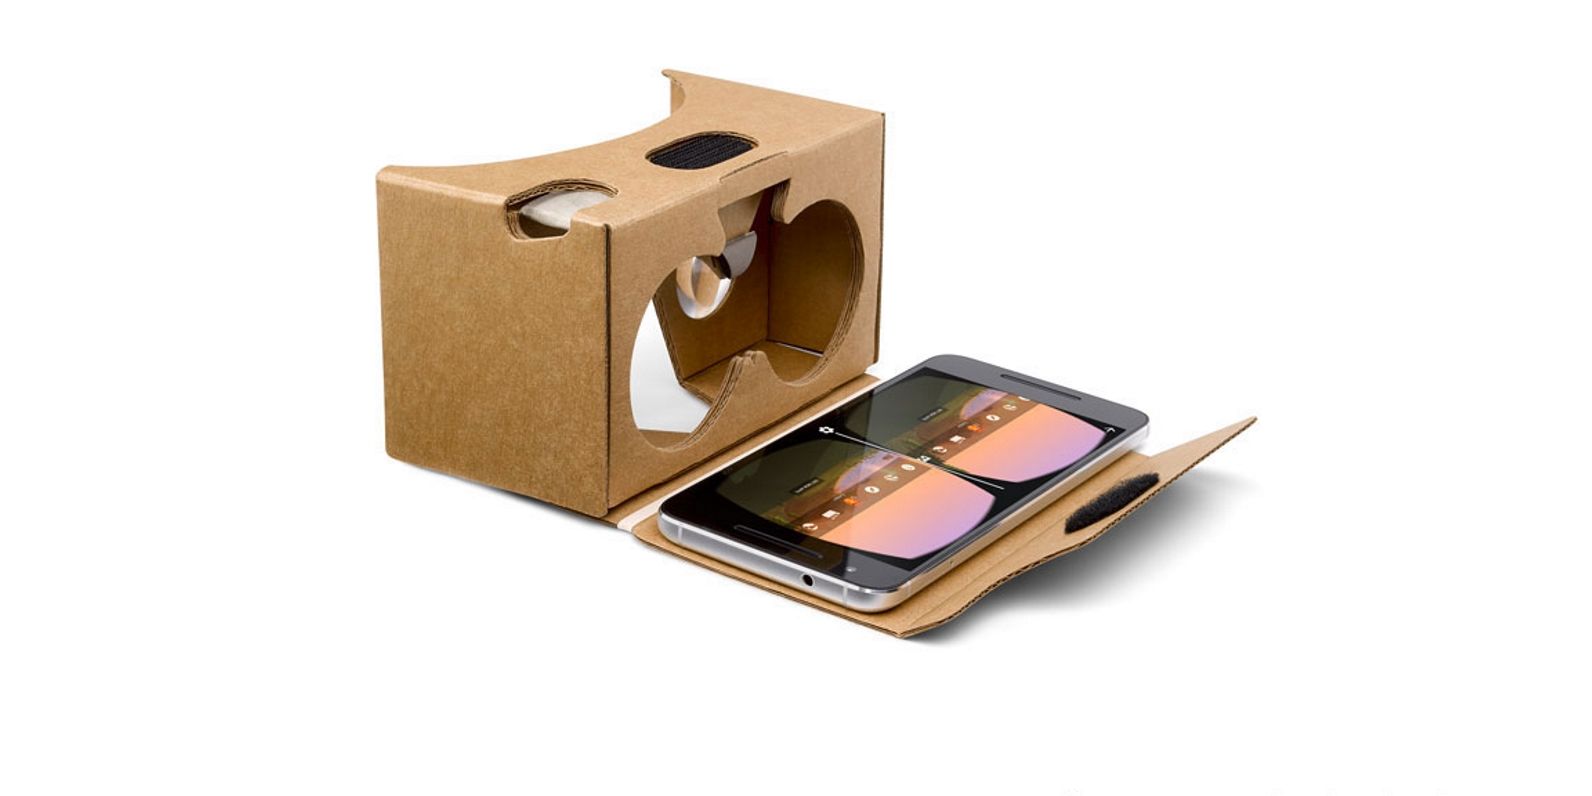 Google's now selling its Cardboard VR viewer outside the US